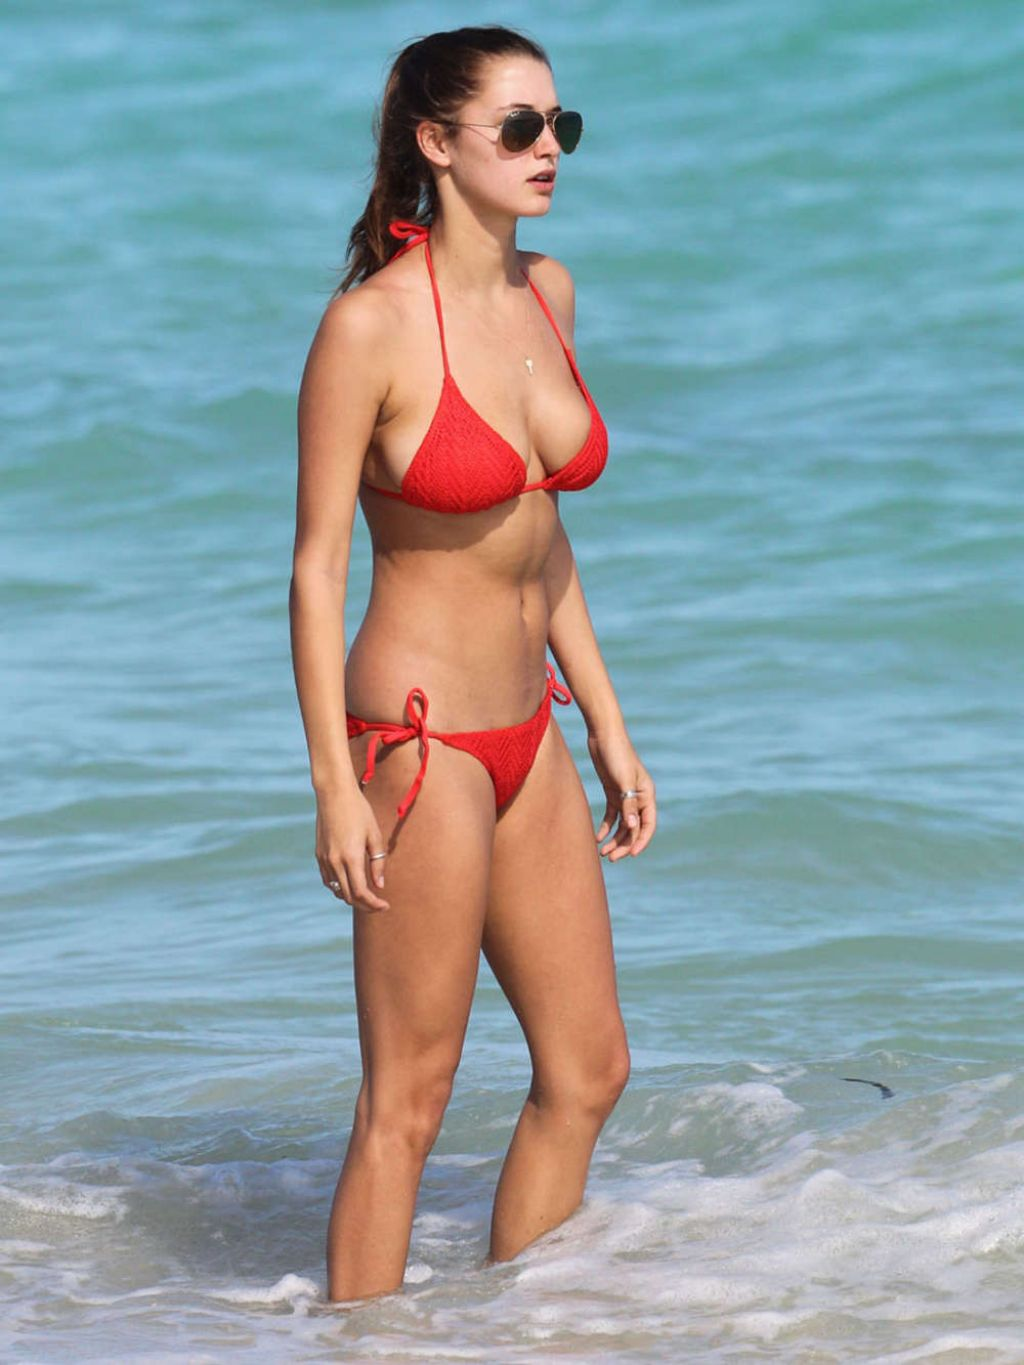 3005 6541 further Alyssa Arce Bikini Beach Miami November 2013 16834 besides 51882 in addition Nbaerving1 together with Sell. on oscar robertson wallpaper